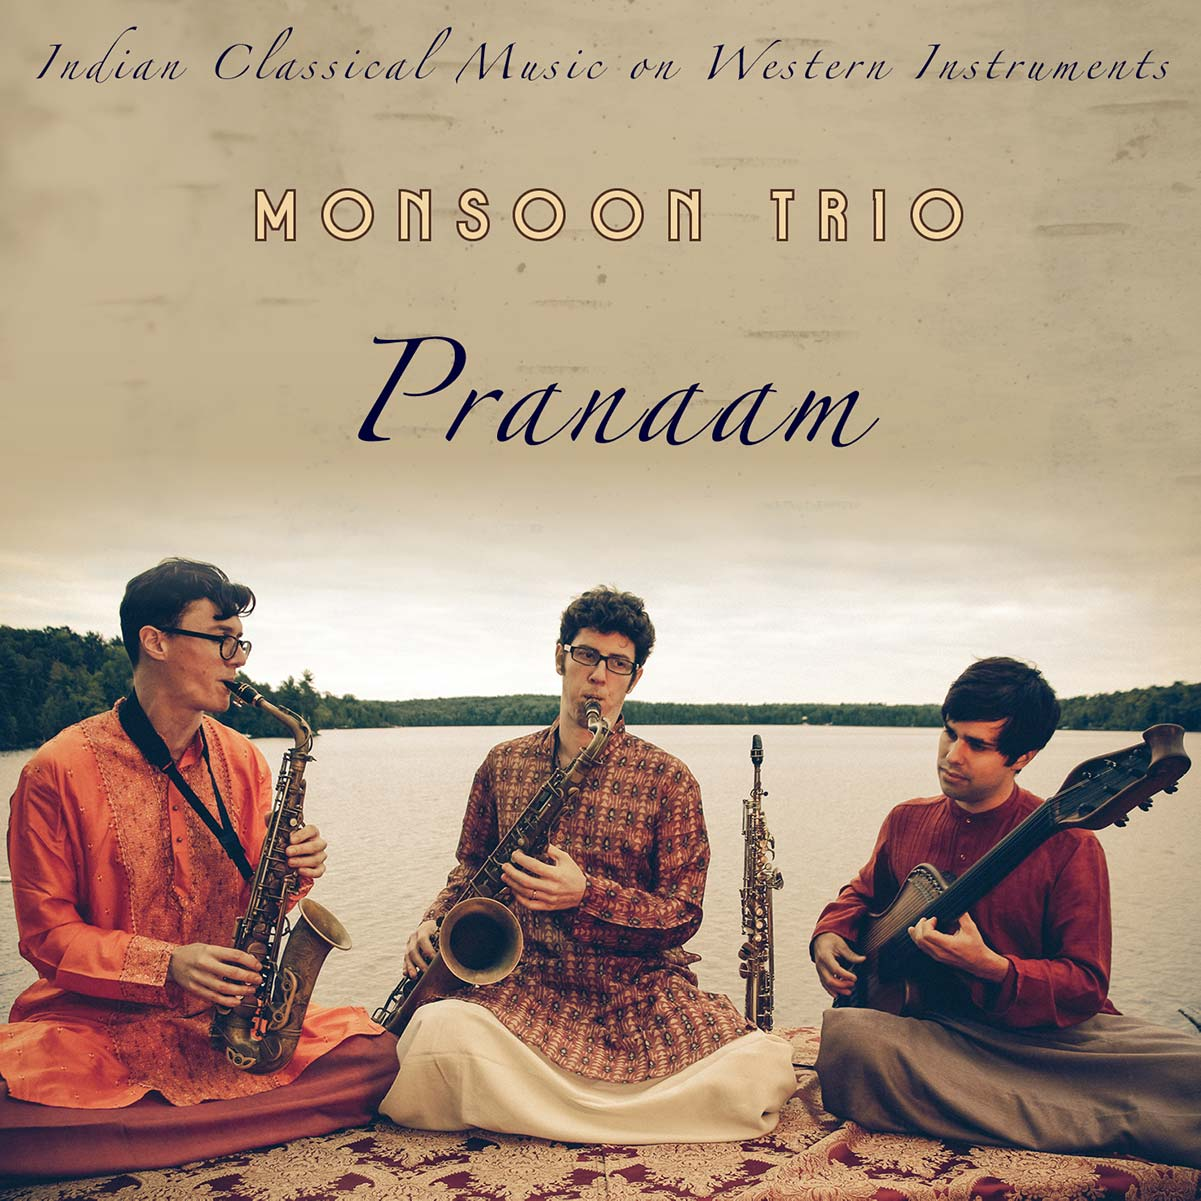 Monsoon Trio - Pranaam - Album art